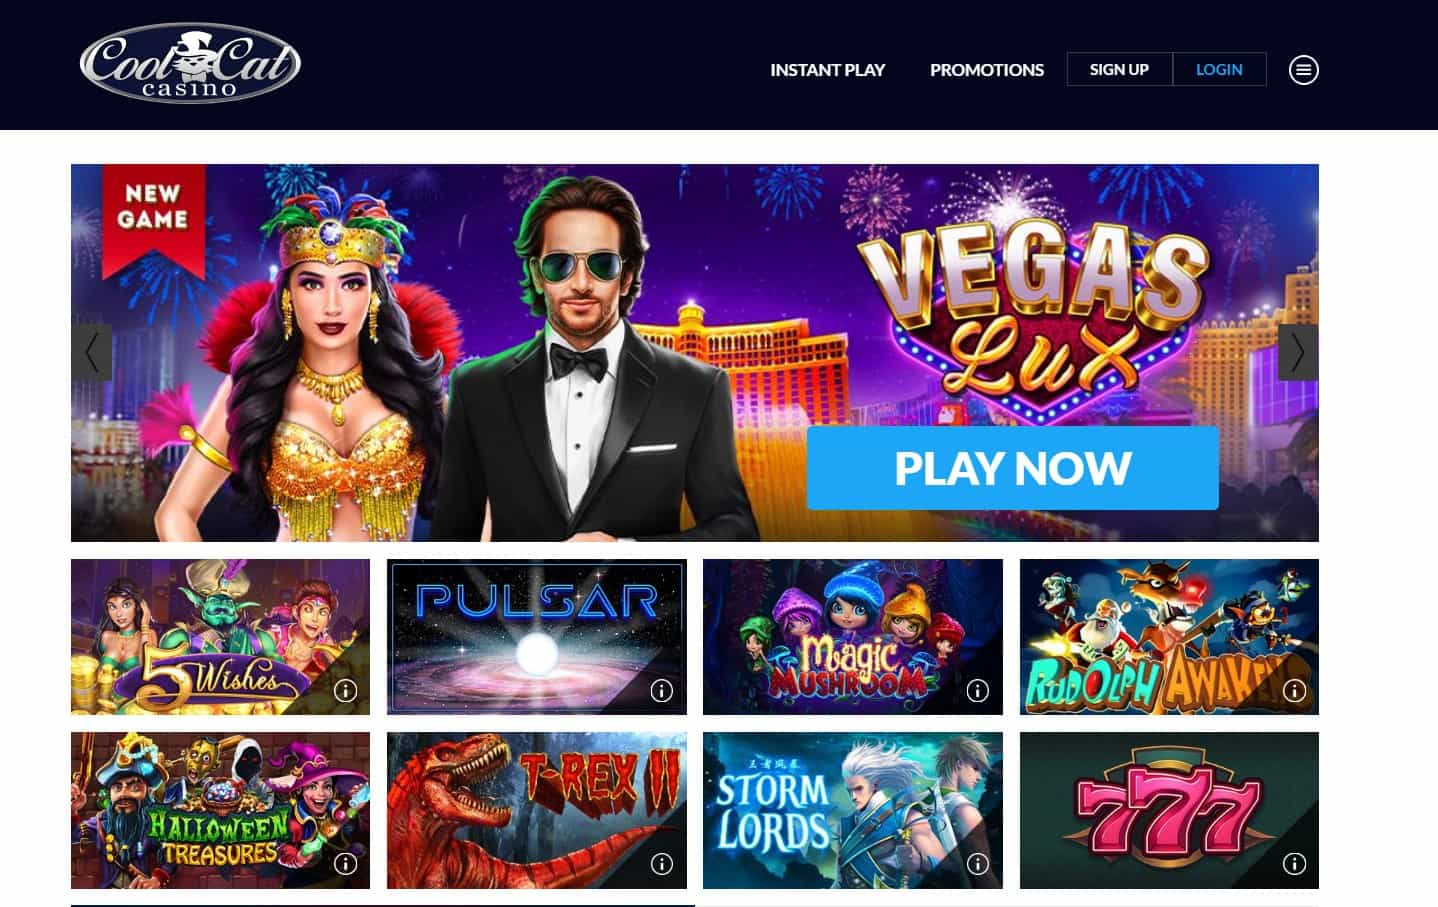 cool cat casino homepage